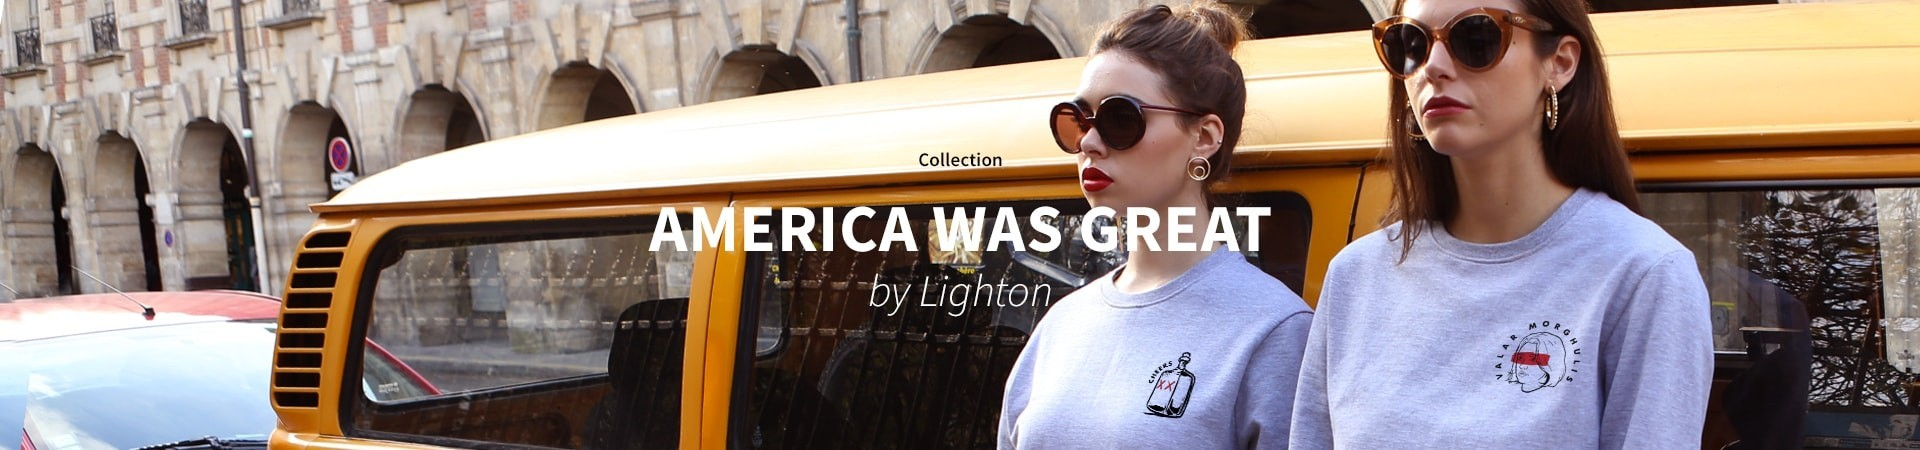 America Was Great by Lighton